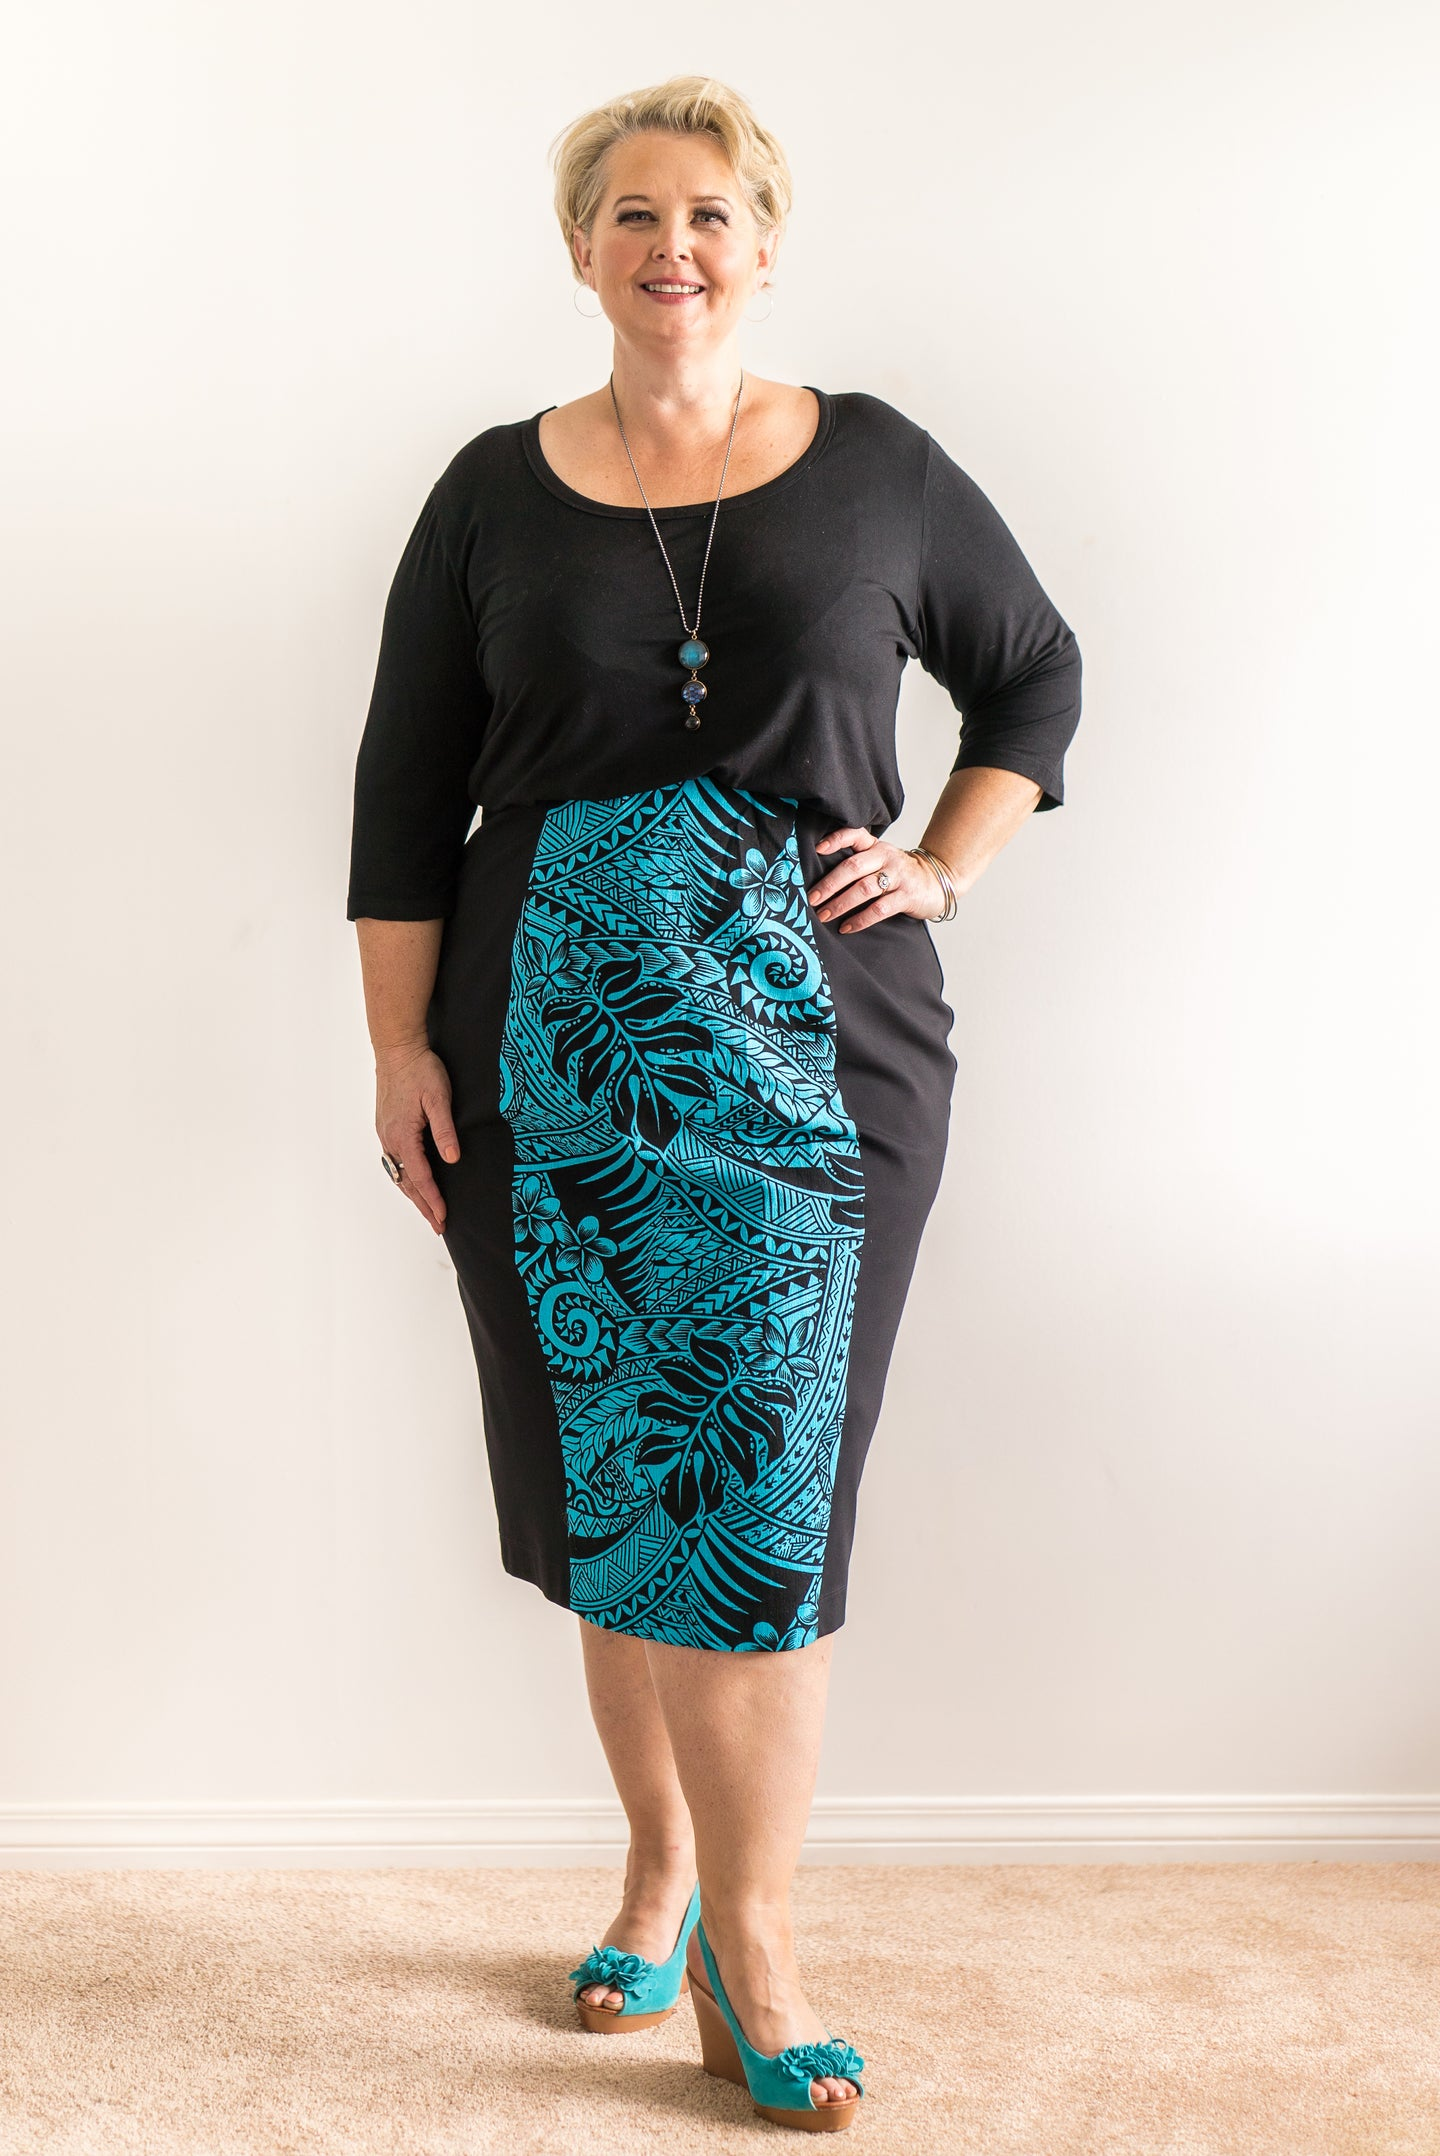 Pencil skirt plus size. Designed by firefly by Rachel Harrison